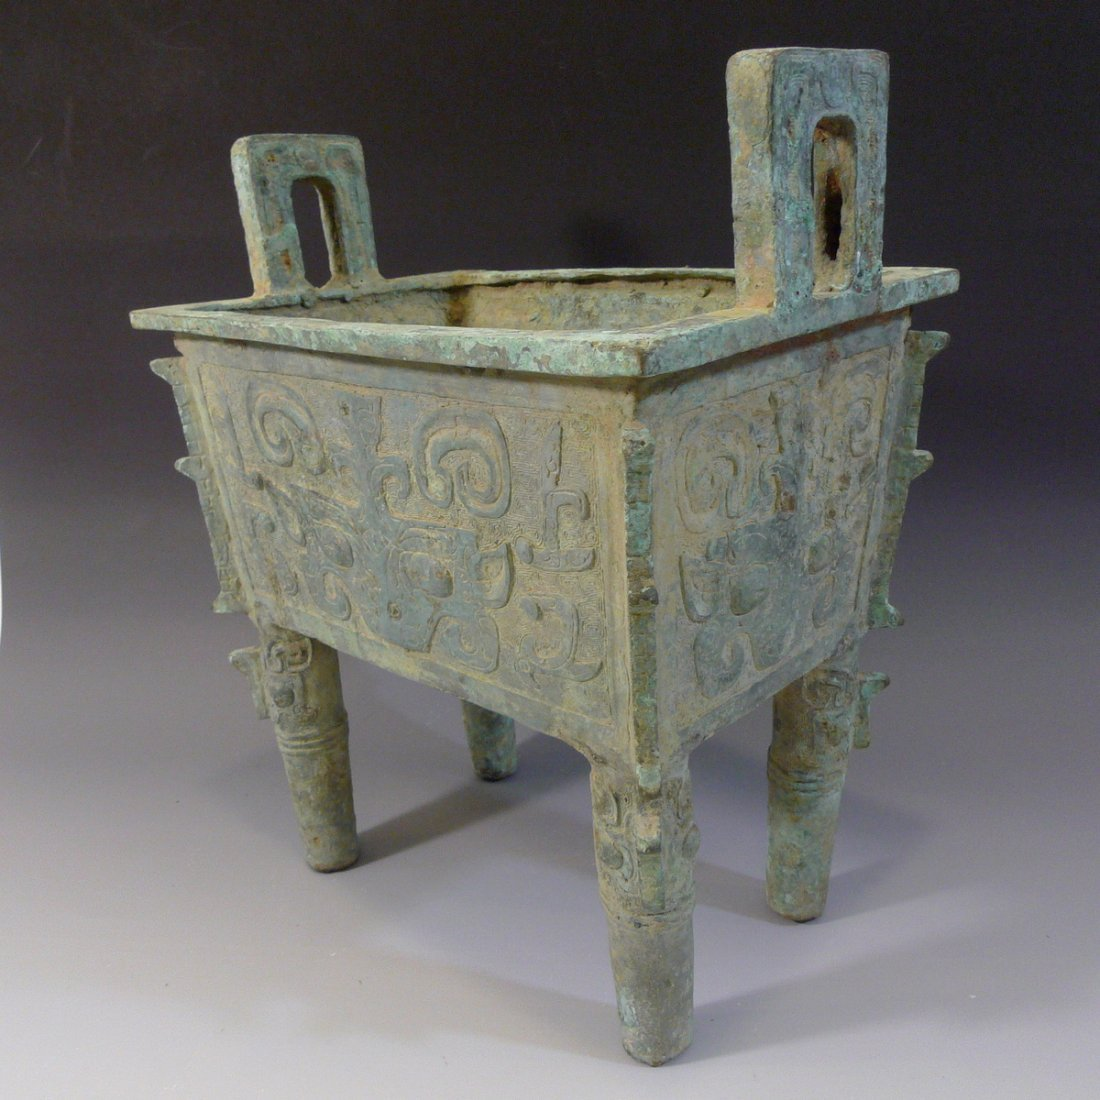 CHINESE ARCHAISTIC BRONZE DING SHANG STYLE - 5